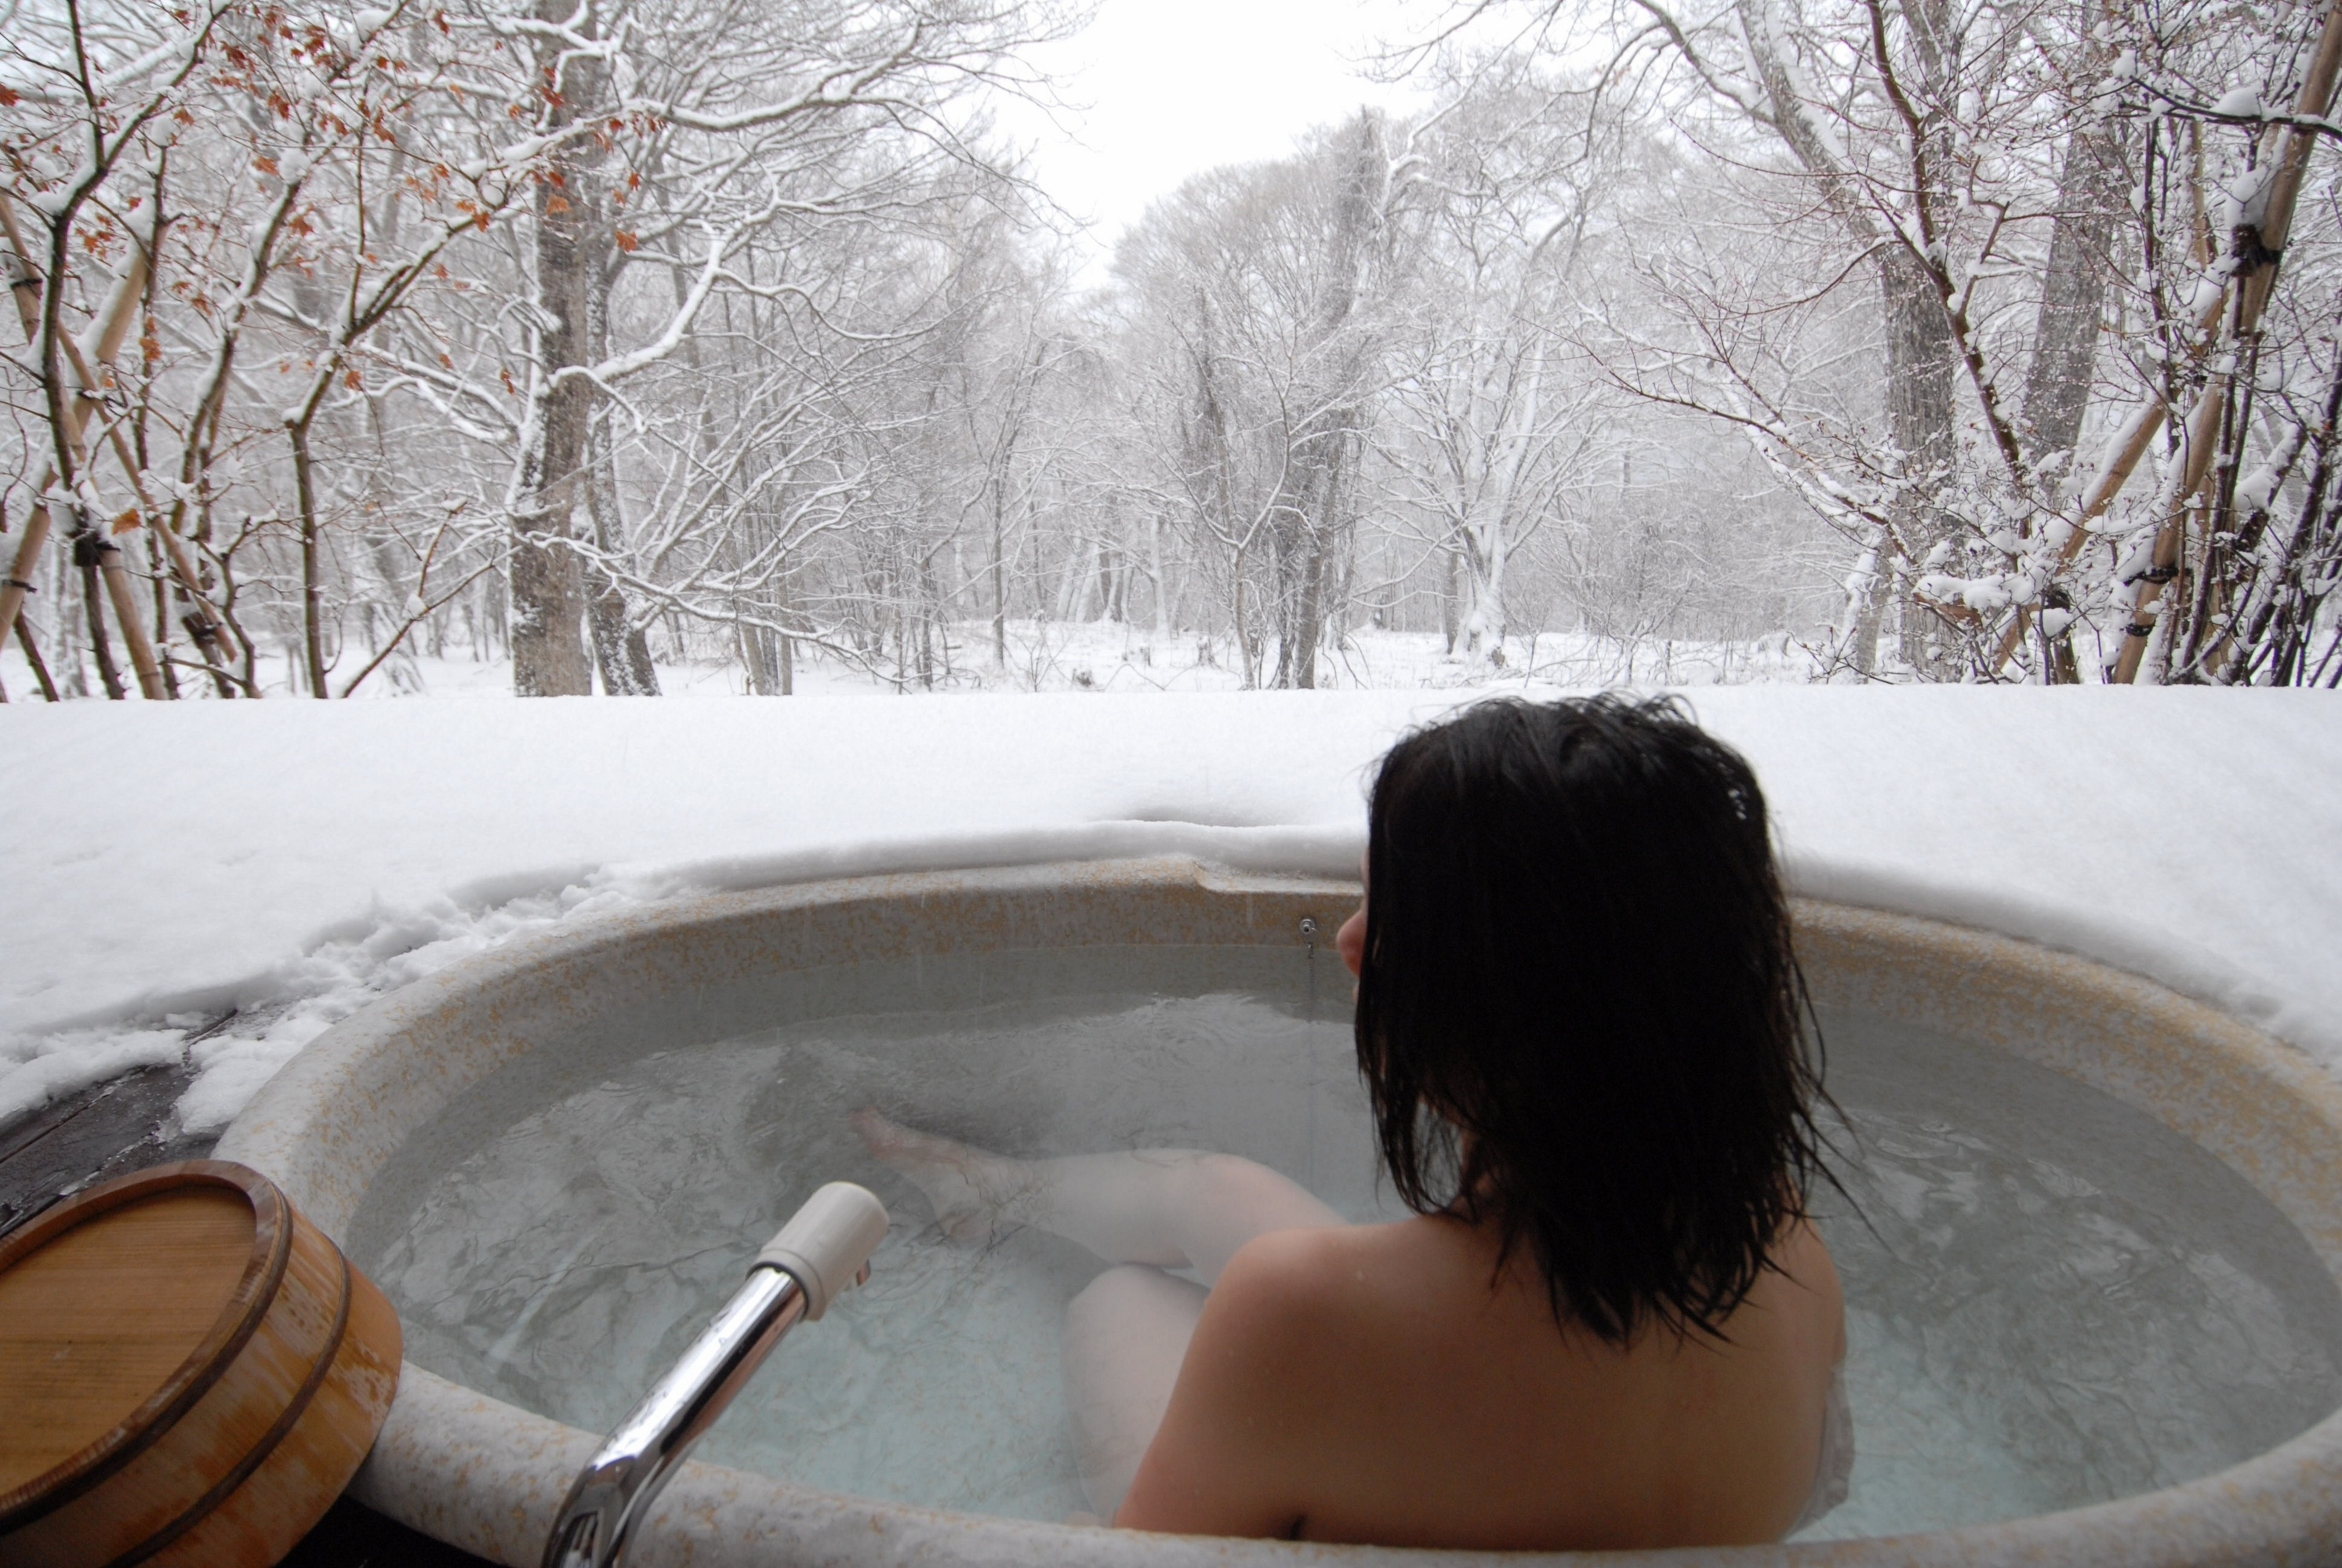 jacuzzi in winter